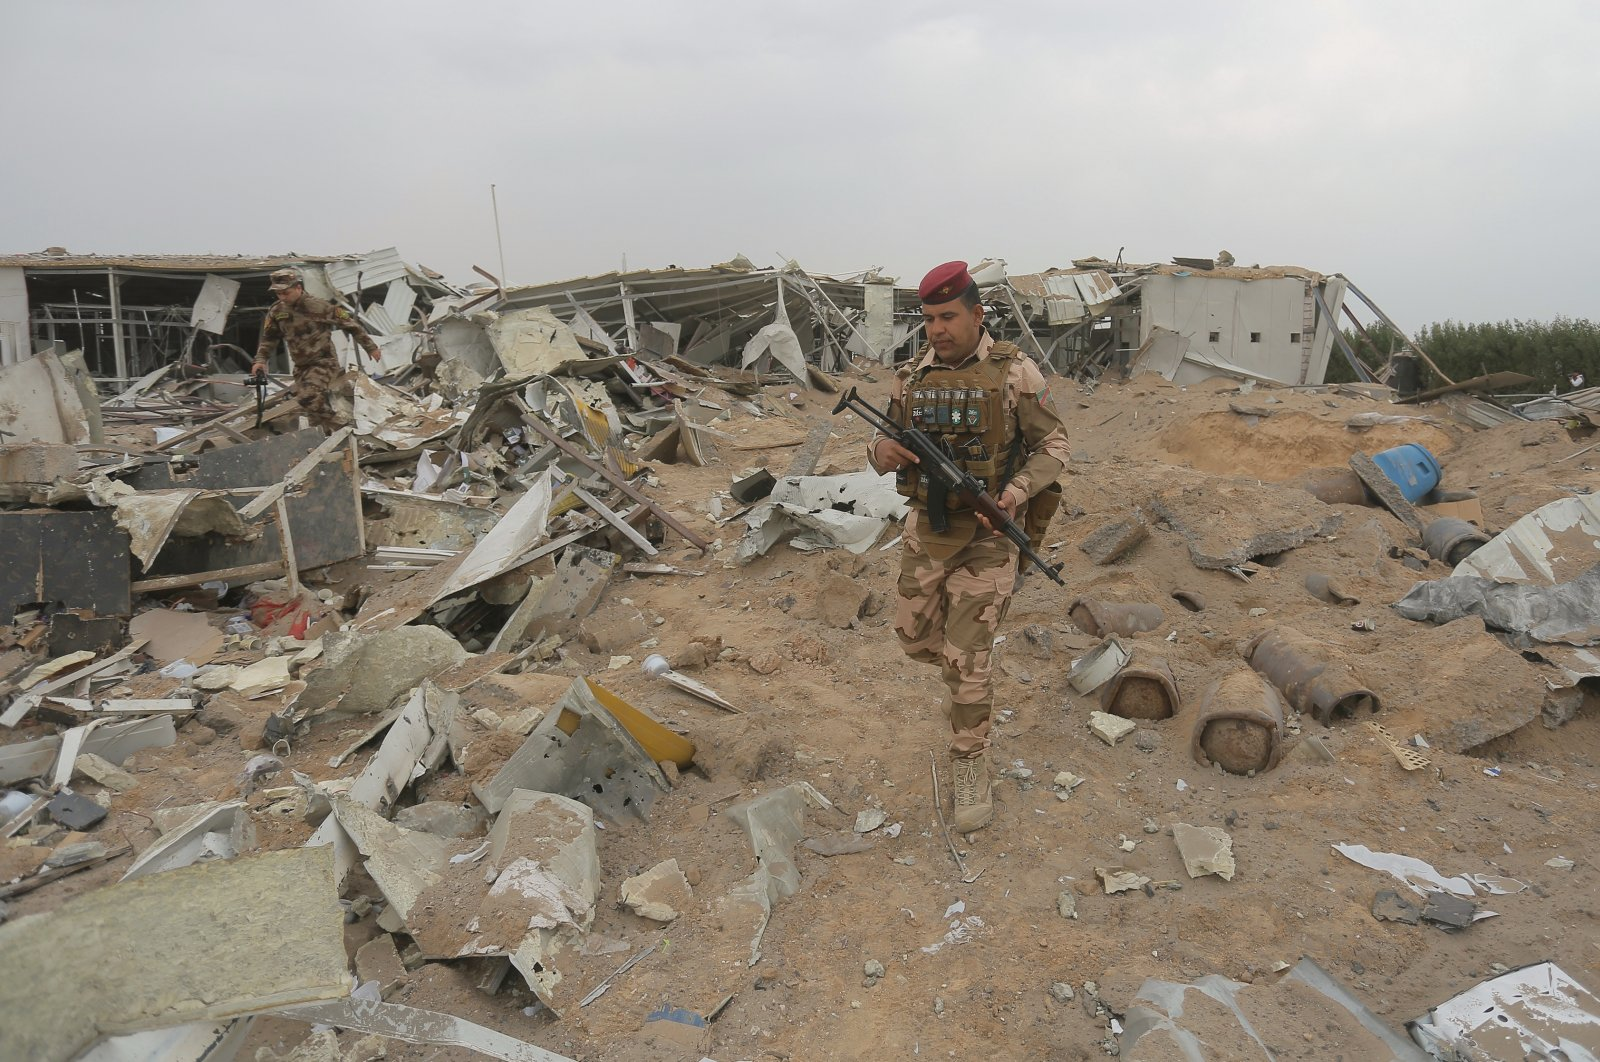 Iraqi army soldiers inspect the destruction at an airport complex under construction in Karbala, Friday, March 13, 2020. (AP Photo)